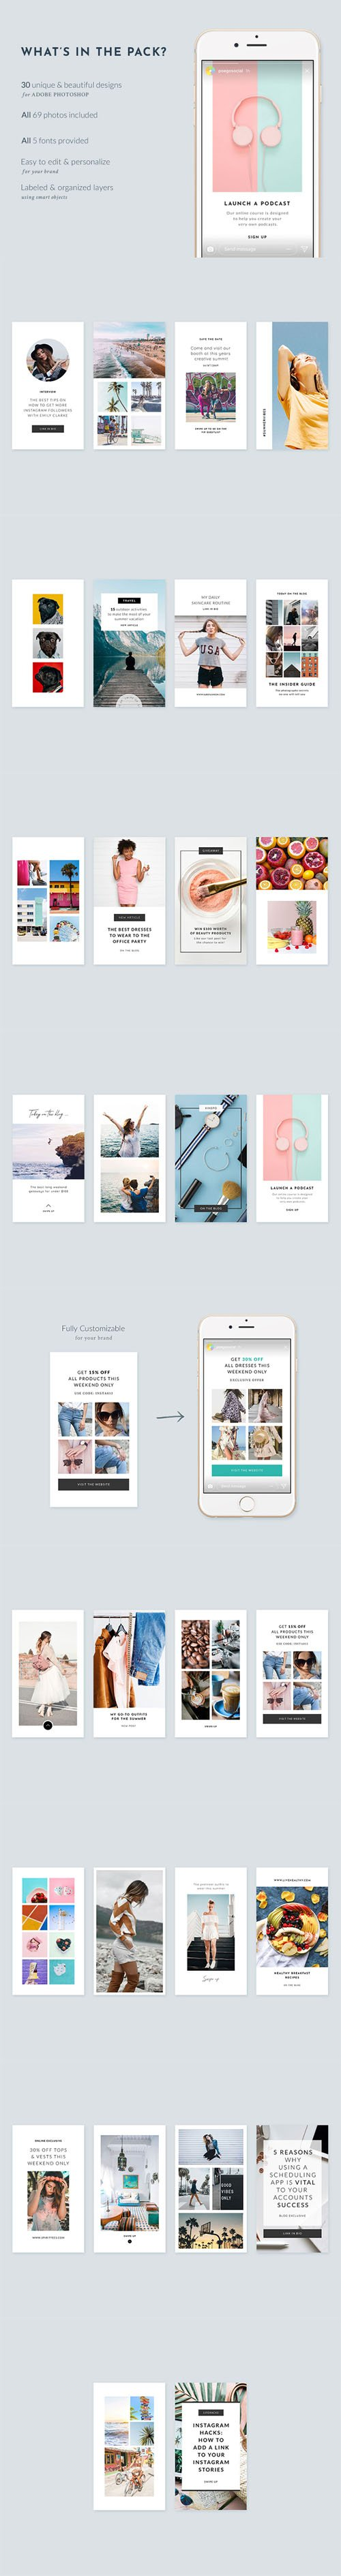 IG Stories Starter Pack - 30 Beautiful Instagram Story templates designed in Photoshop